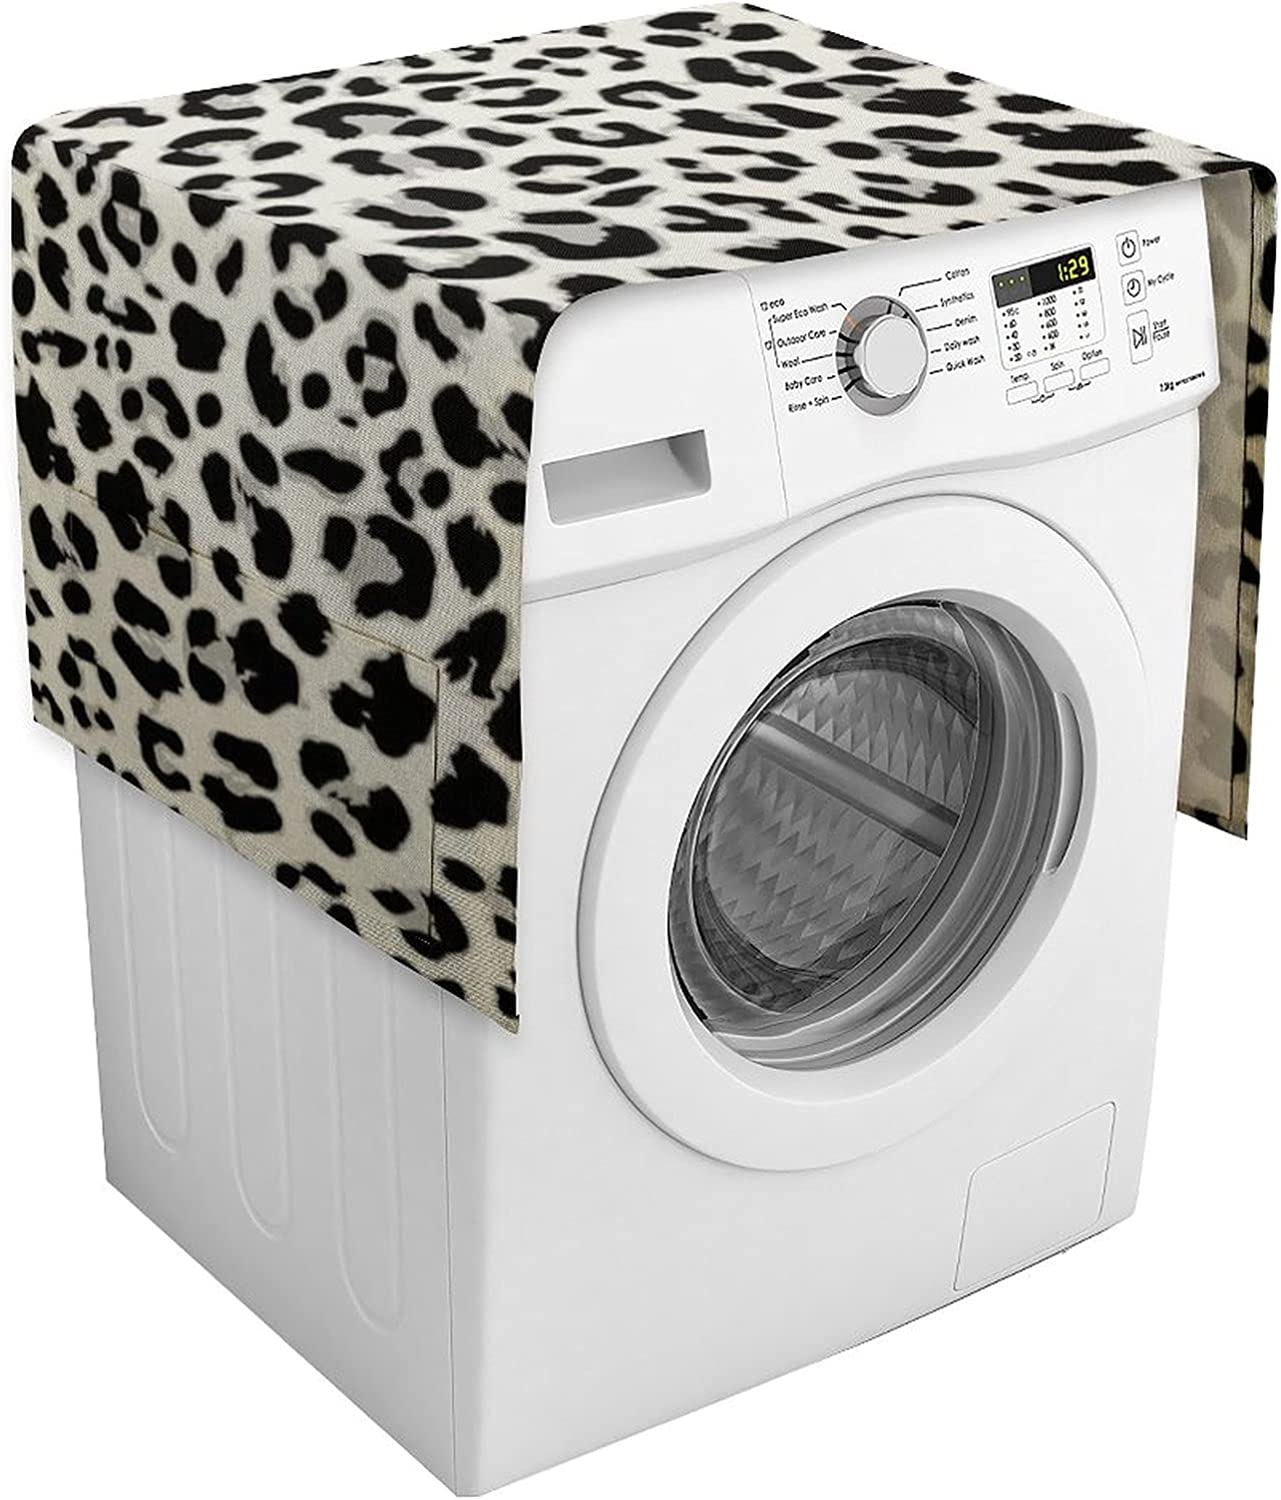 Multi-Purpose Washing Super popular service specialty store Machine Covers Protector Appliance Washer